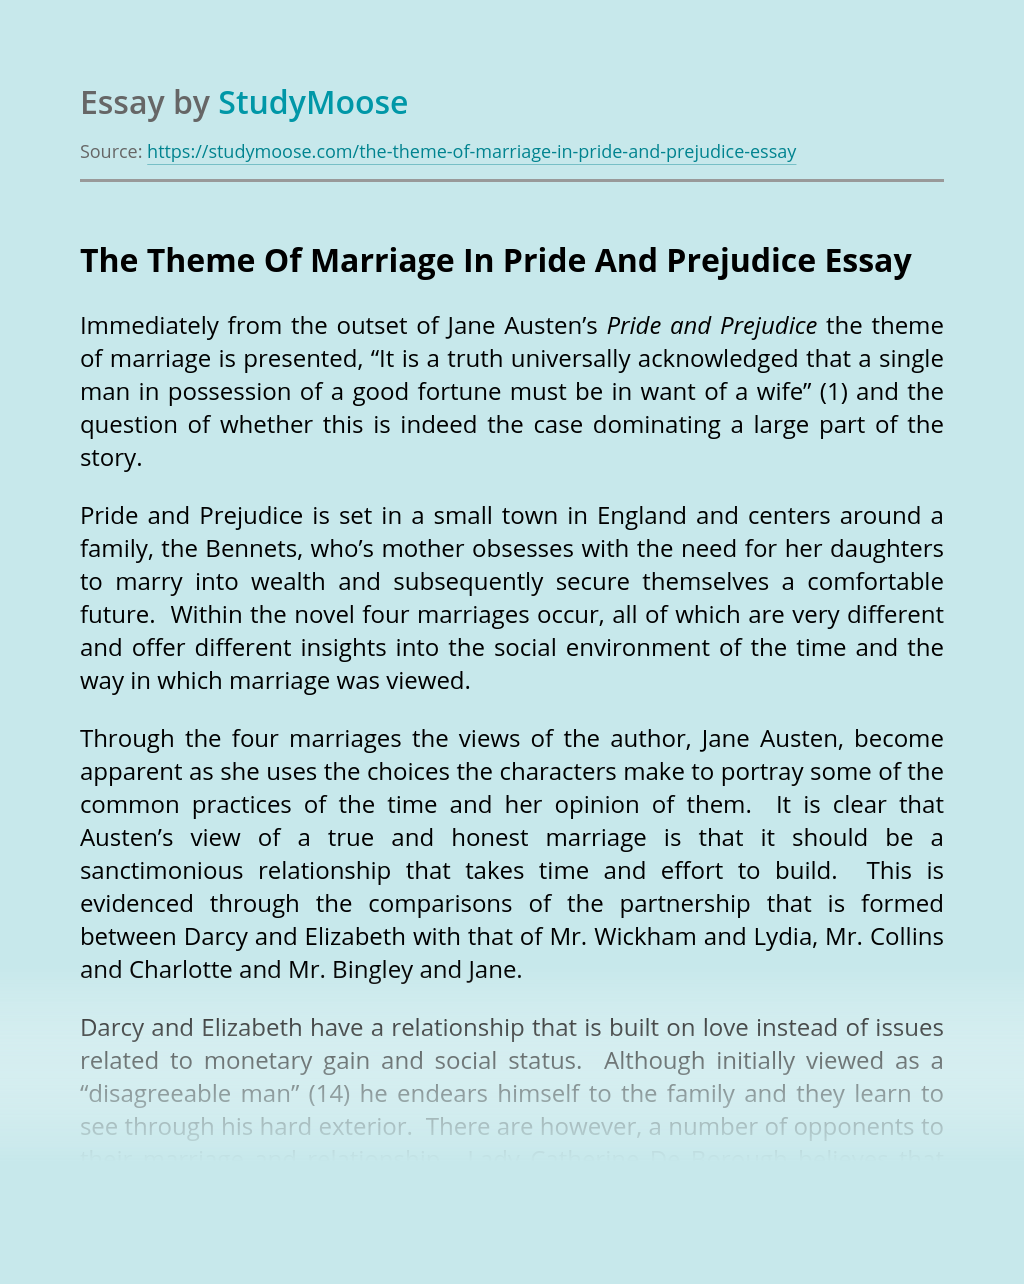 The Theme Of Marriage In Pride And Prejudice